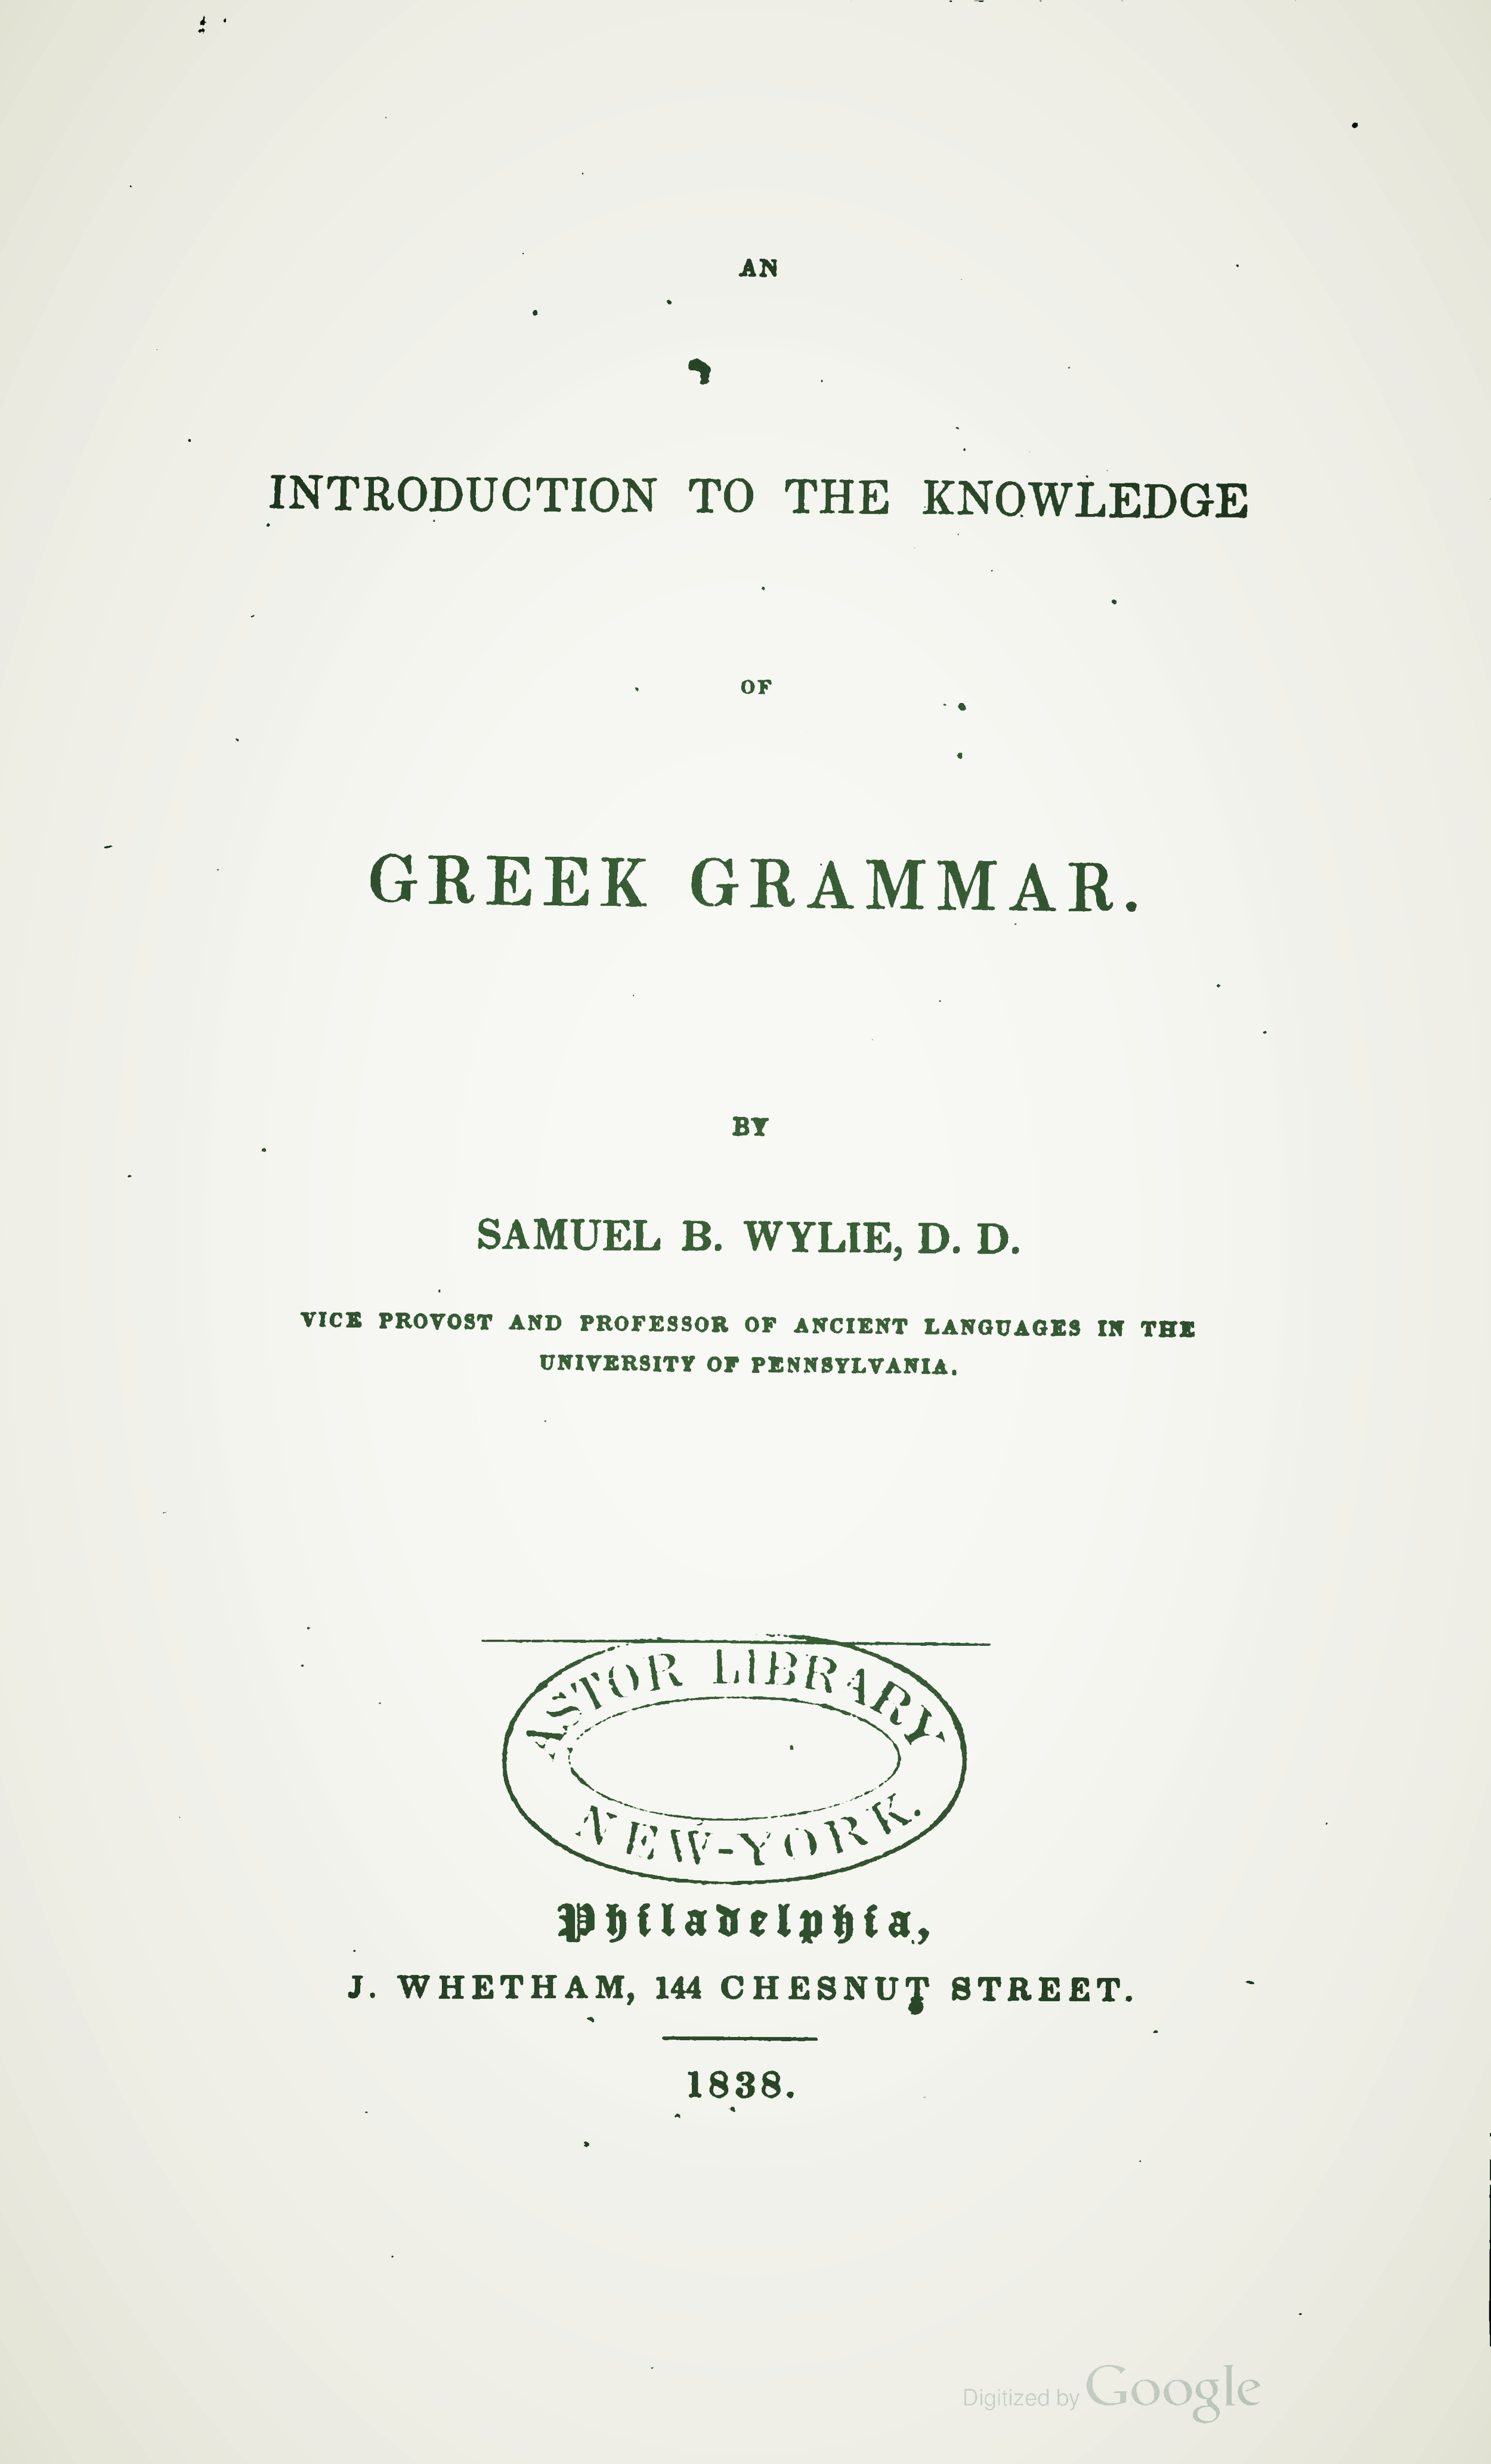 Wylie, Samuel Brown, An Introduction to the Knowledge of Greek Grammar Title Page.jpg